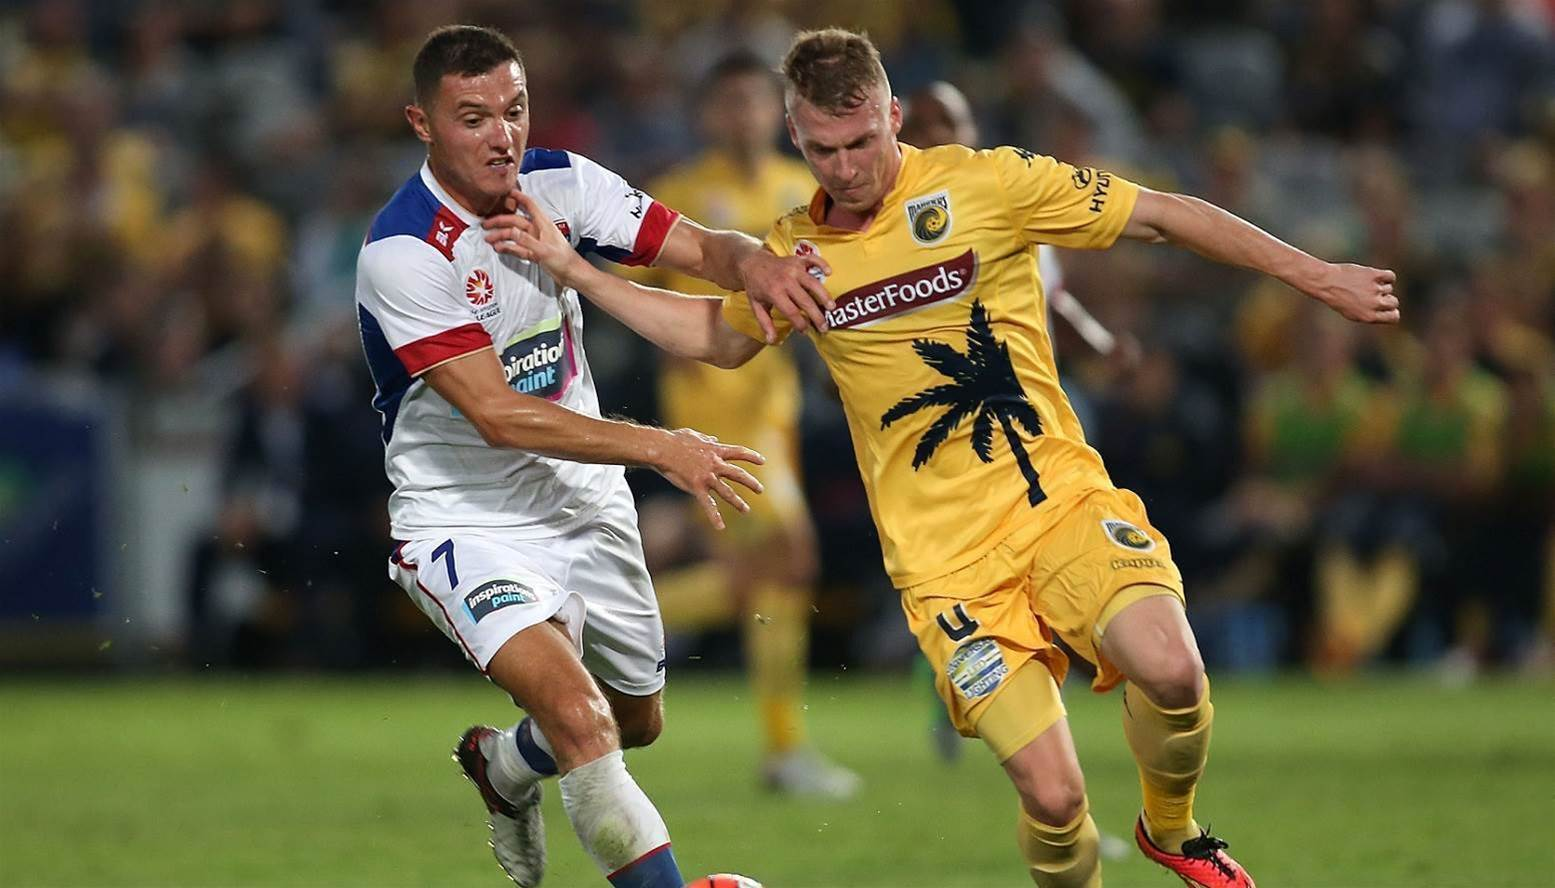 Defender returns to the Mariners